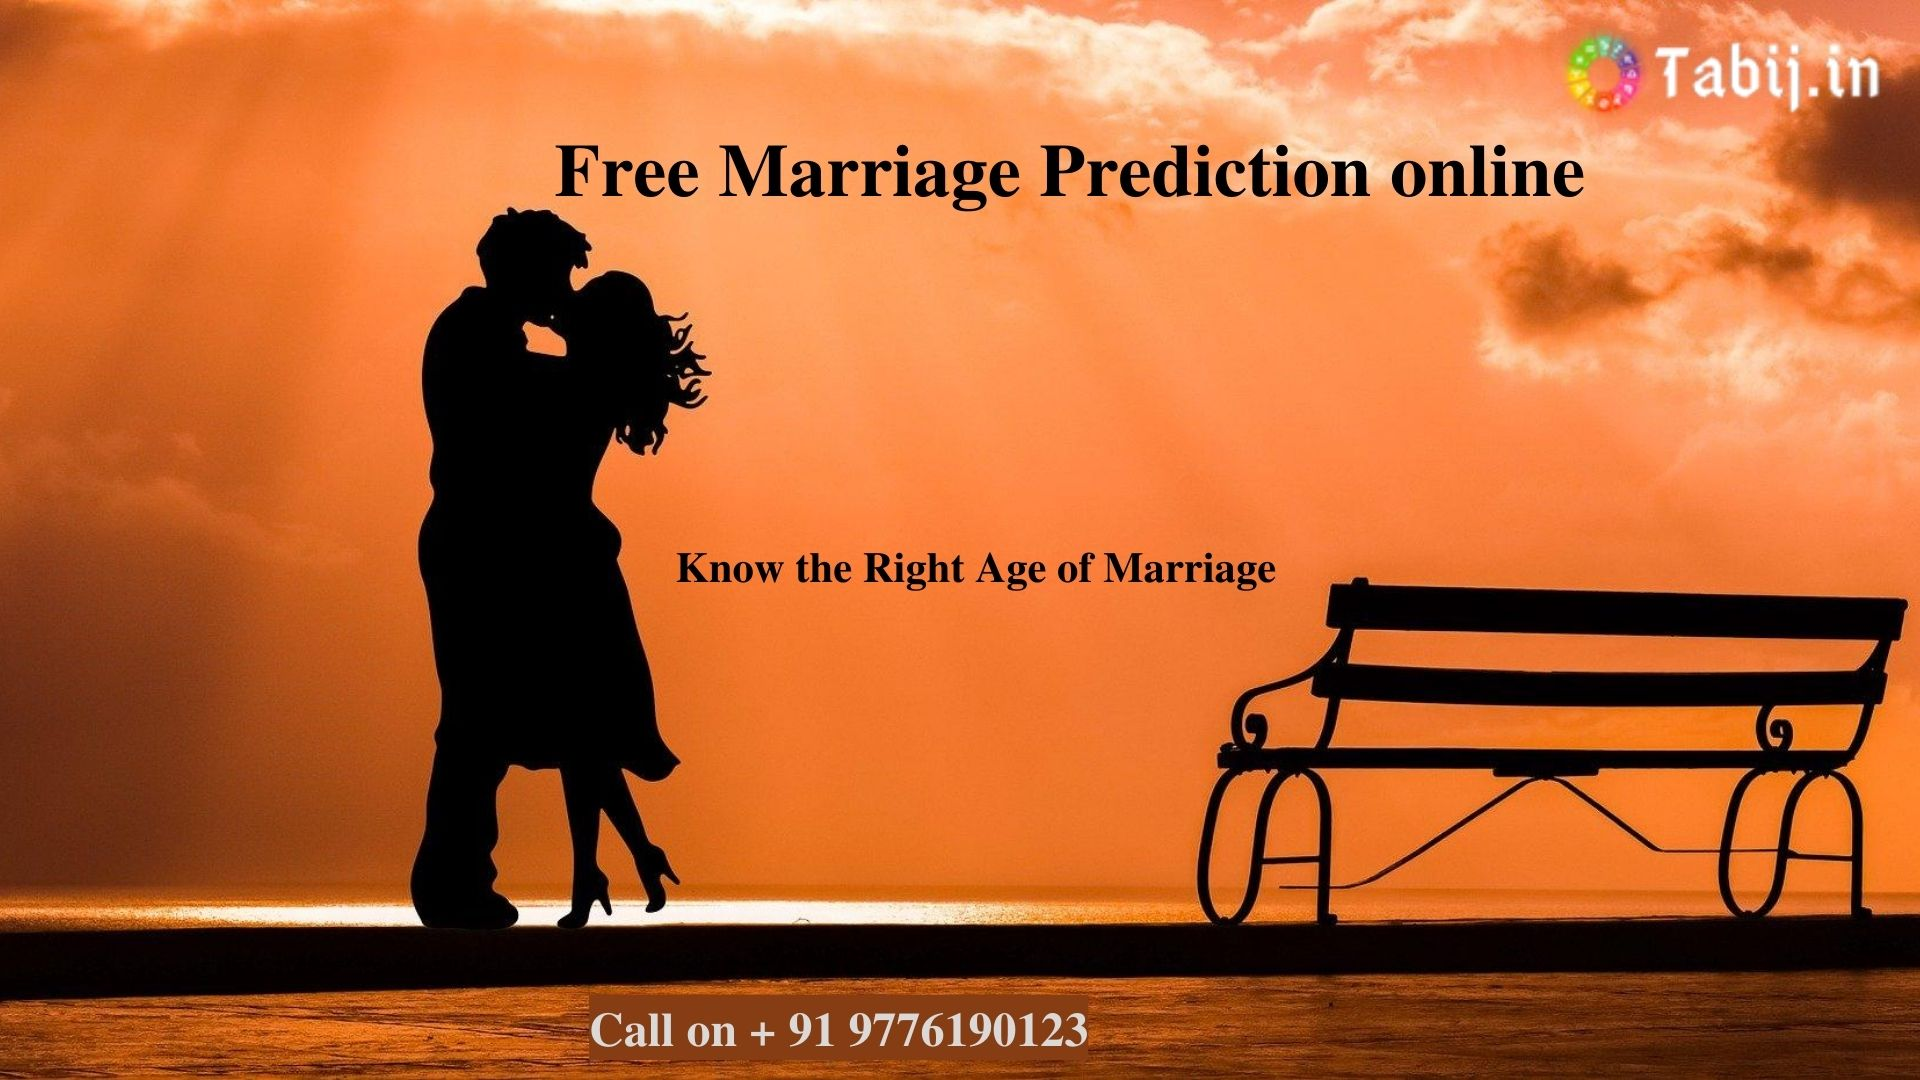 Free Marriage Prediction